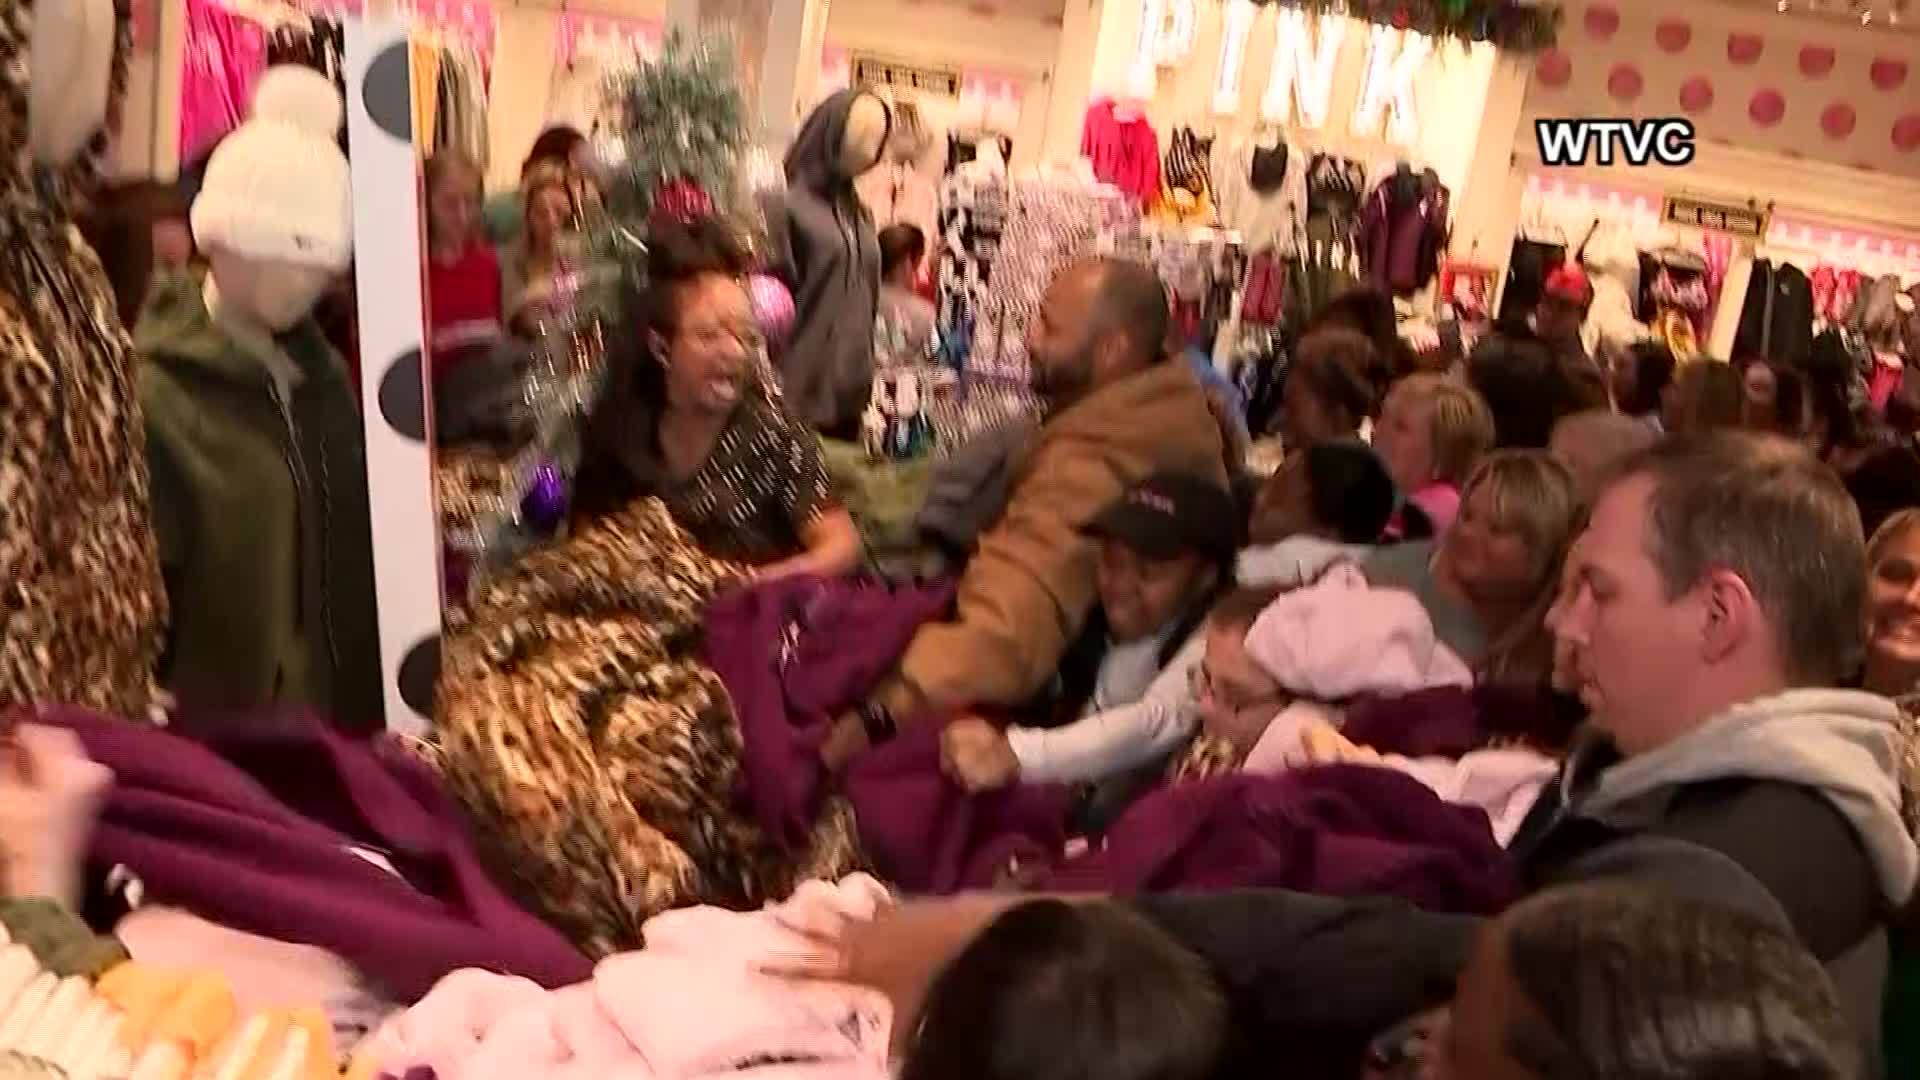 VIDEO: Black Friday chaos: Frantic shoppers attack hoodie display at Victoria's Secret